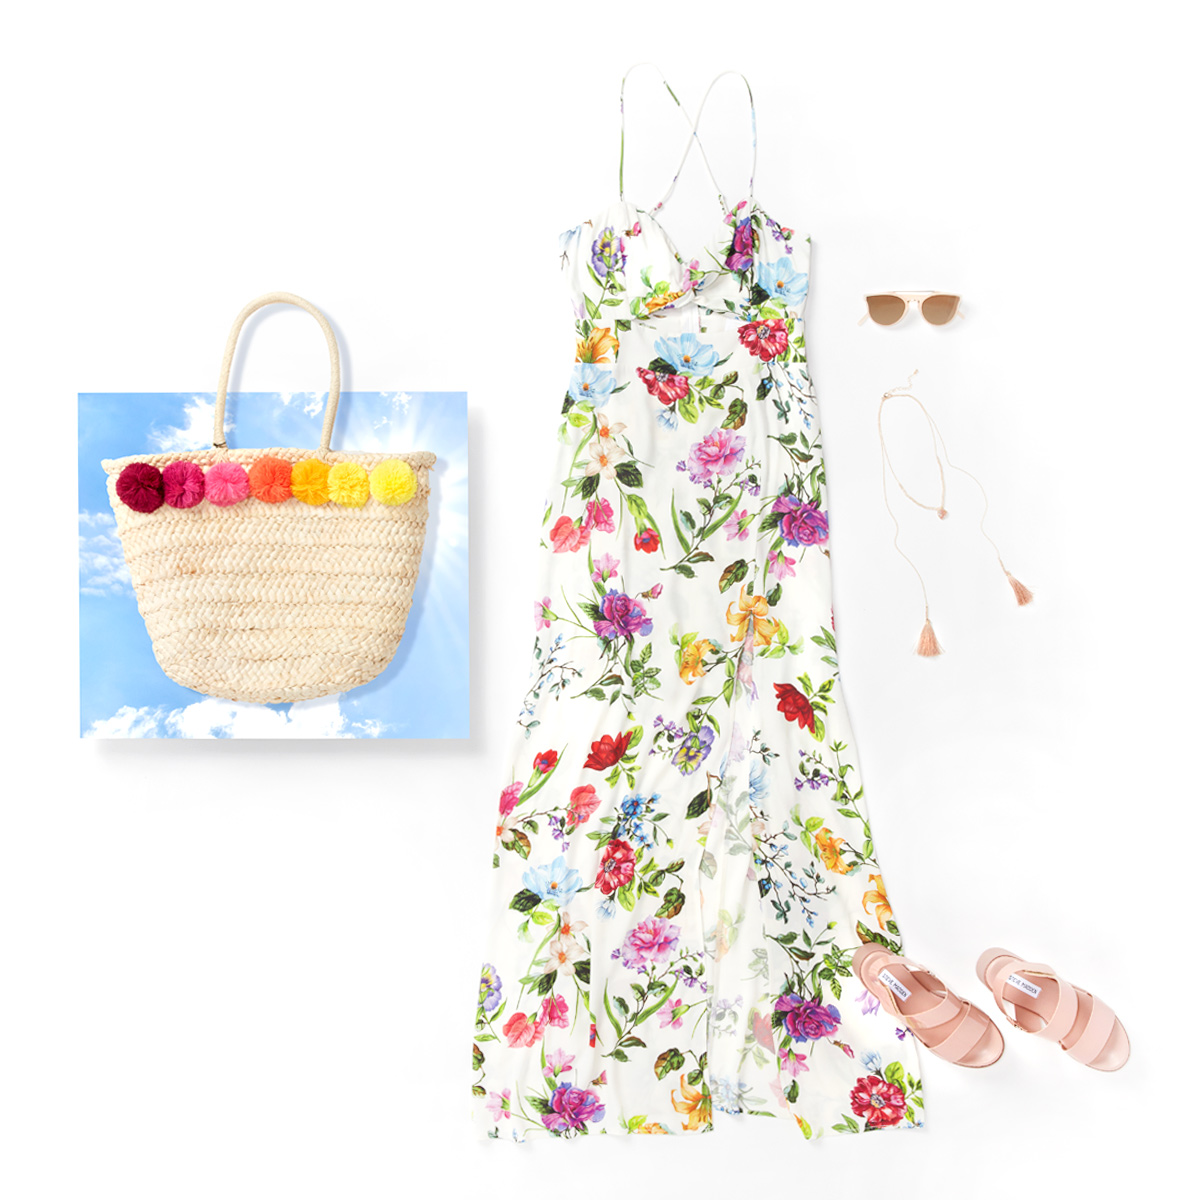 Floral maxi dress, nude sandals tassel necklace, sunglasses and a festive straw bag laid flat on a white background.